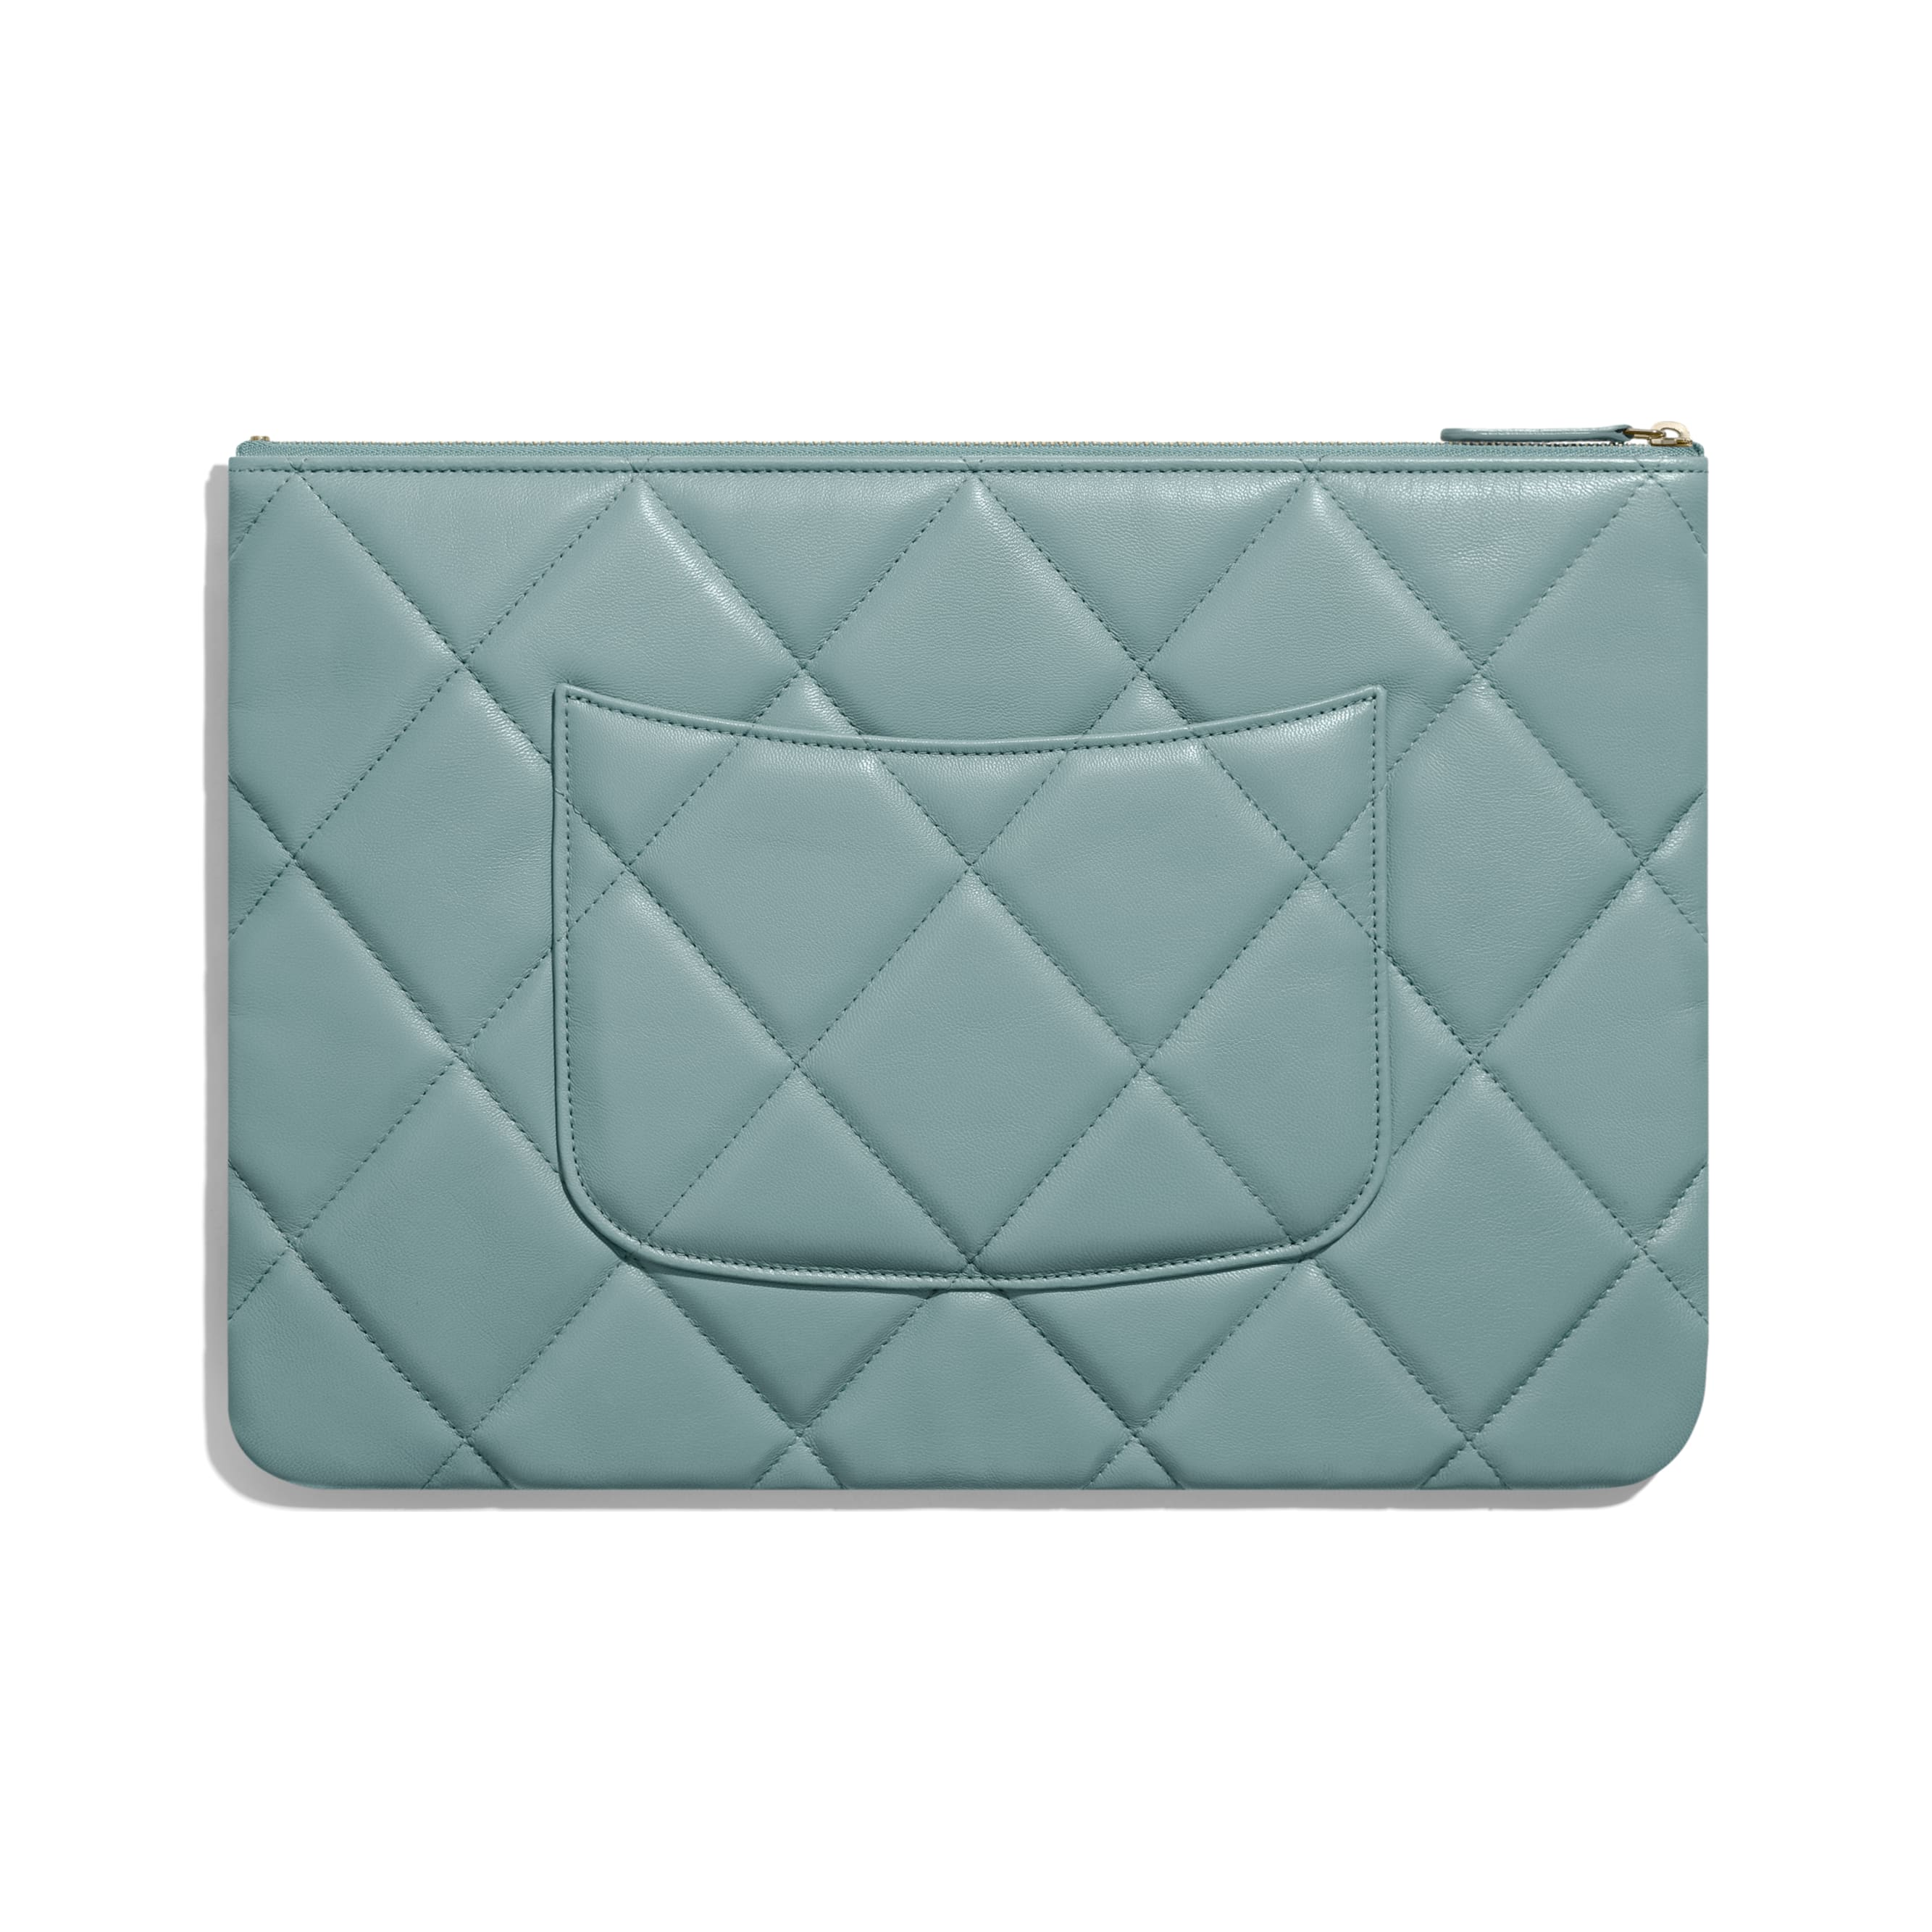 CHANEL 19 Large Pouch - Blue - Shiny Goatskin, Gold-Tone, Silver-Tone & Ruthenium-Finish Metal - Alternative view - see standard sized version